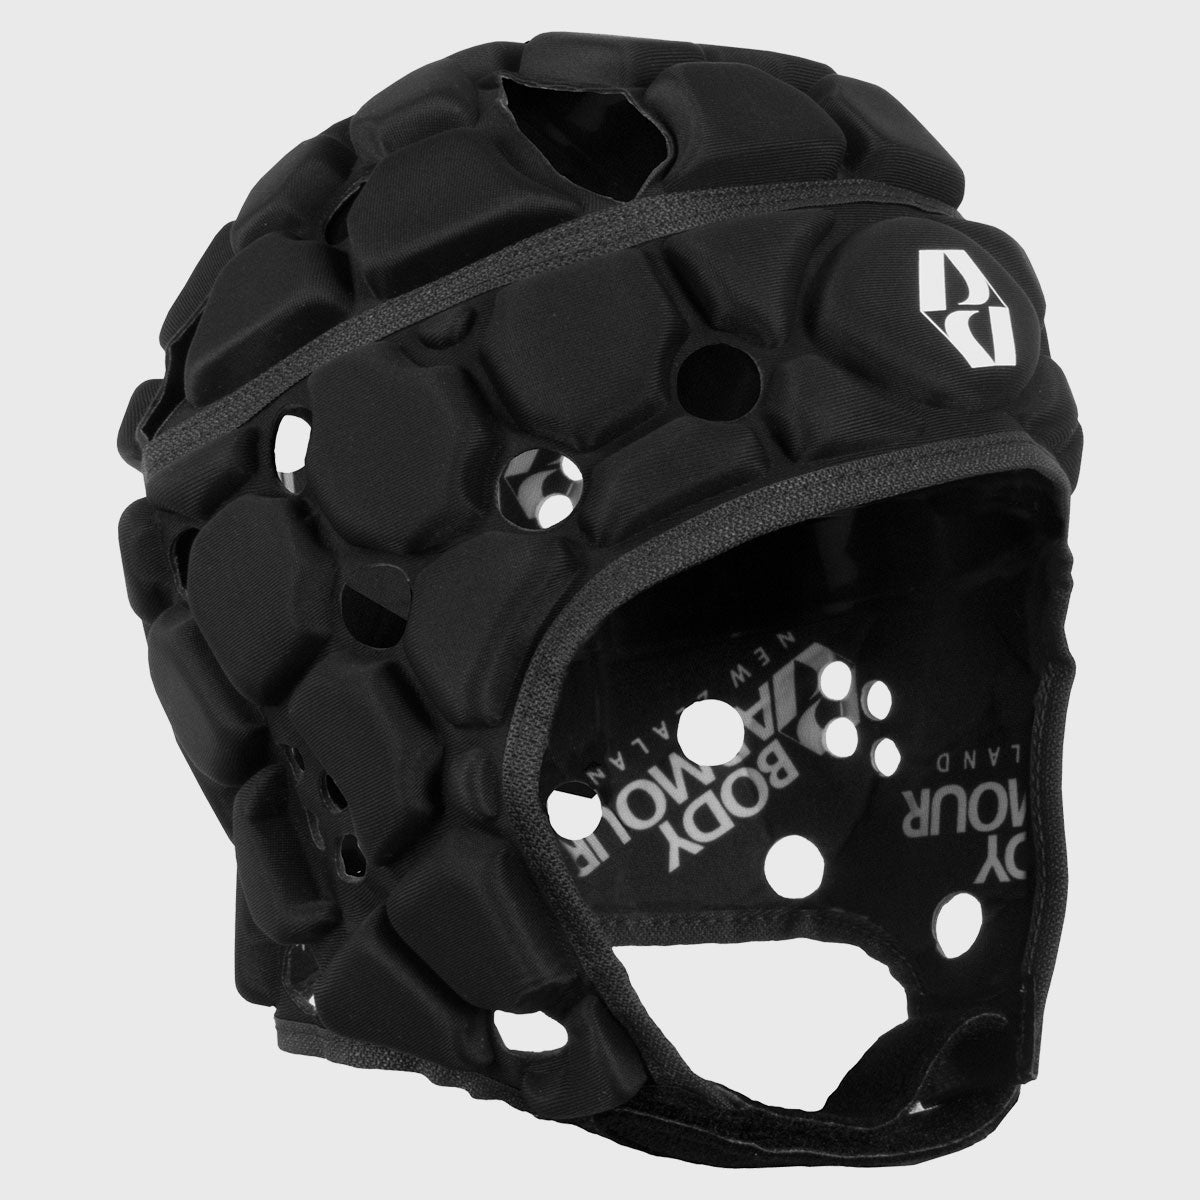 Kid's Ventilator Rugby Headguard Black